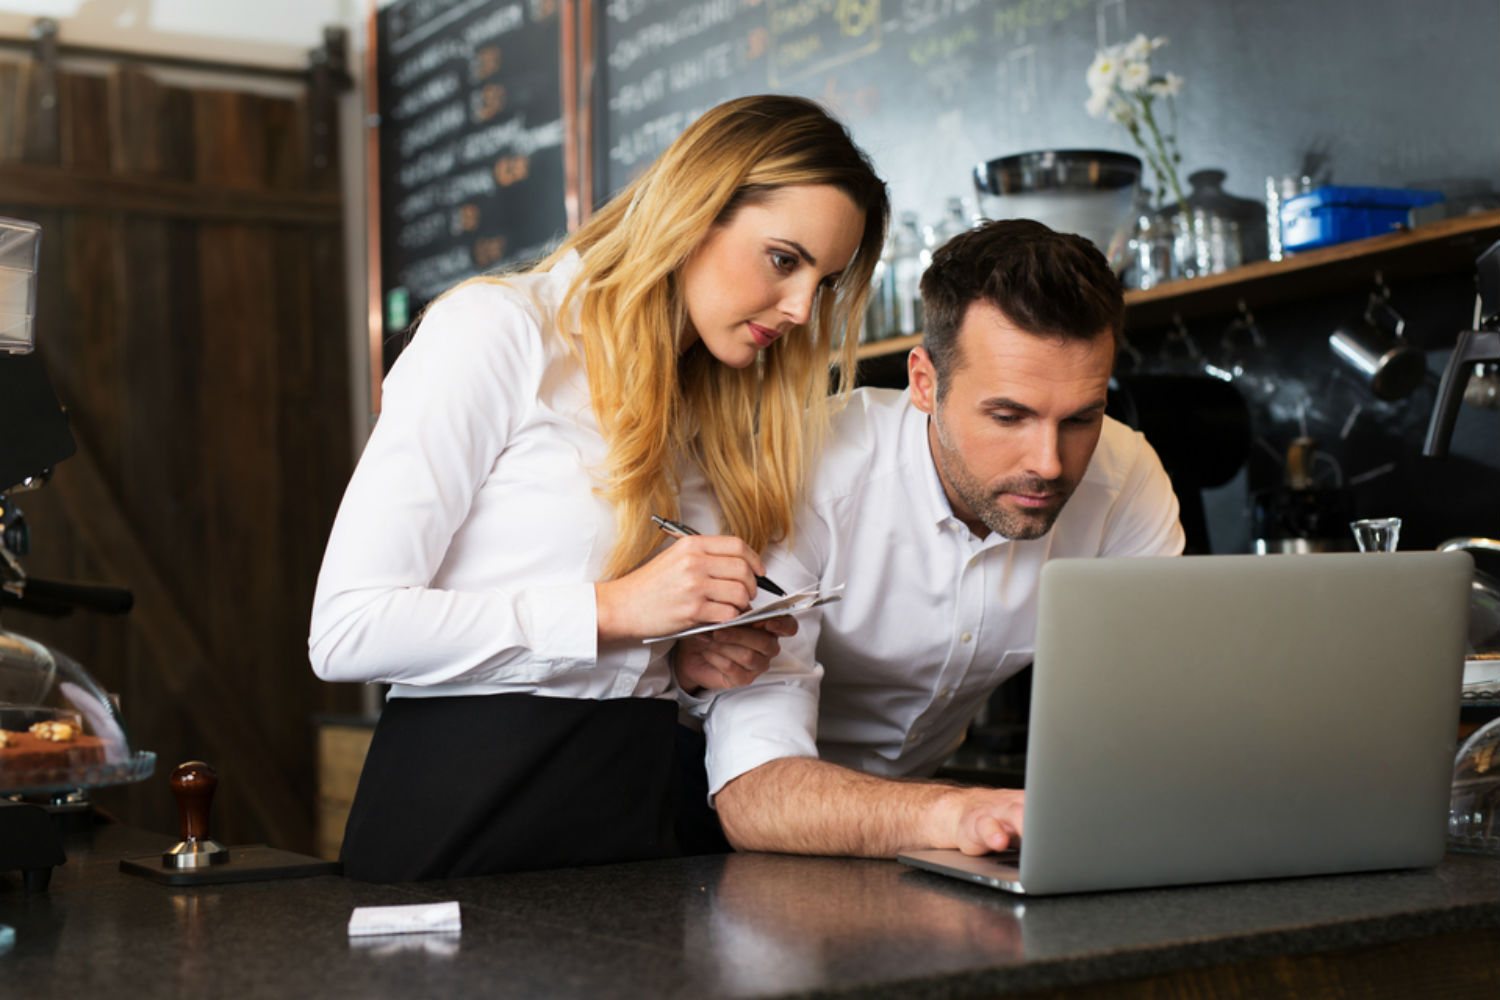 start-a-business-with-someone-you-met-online